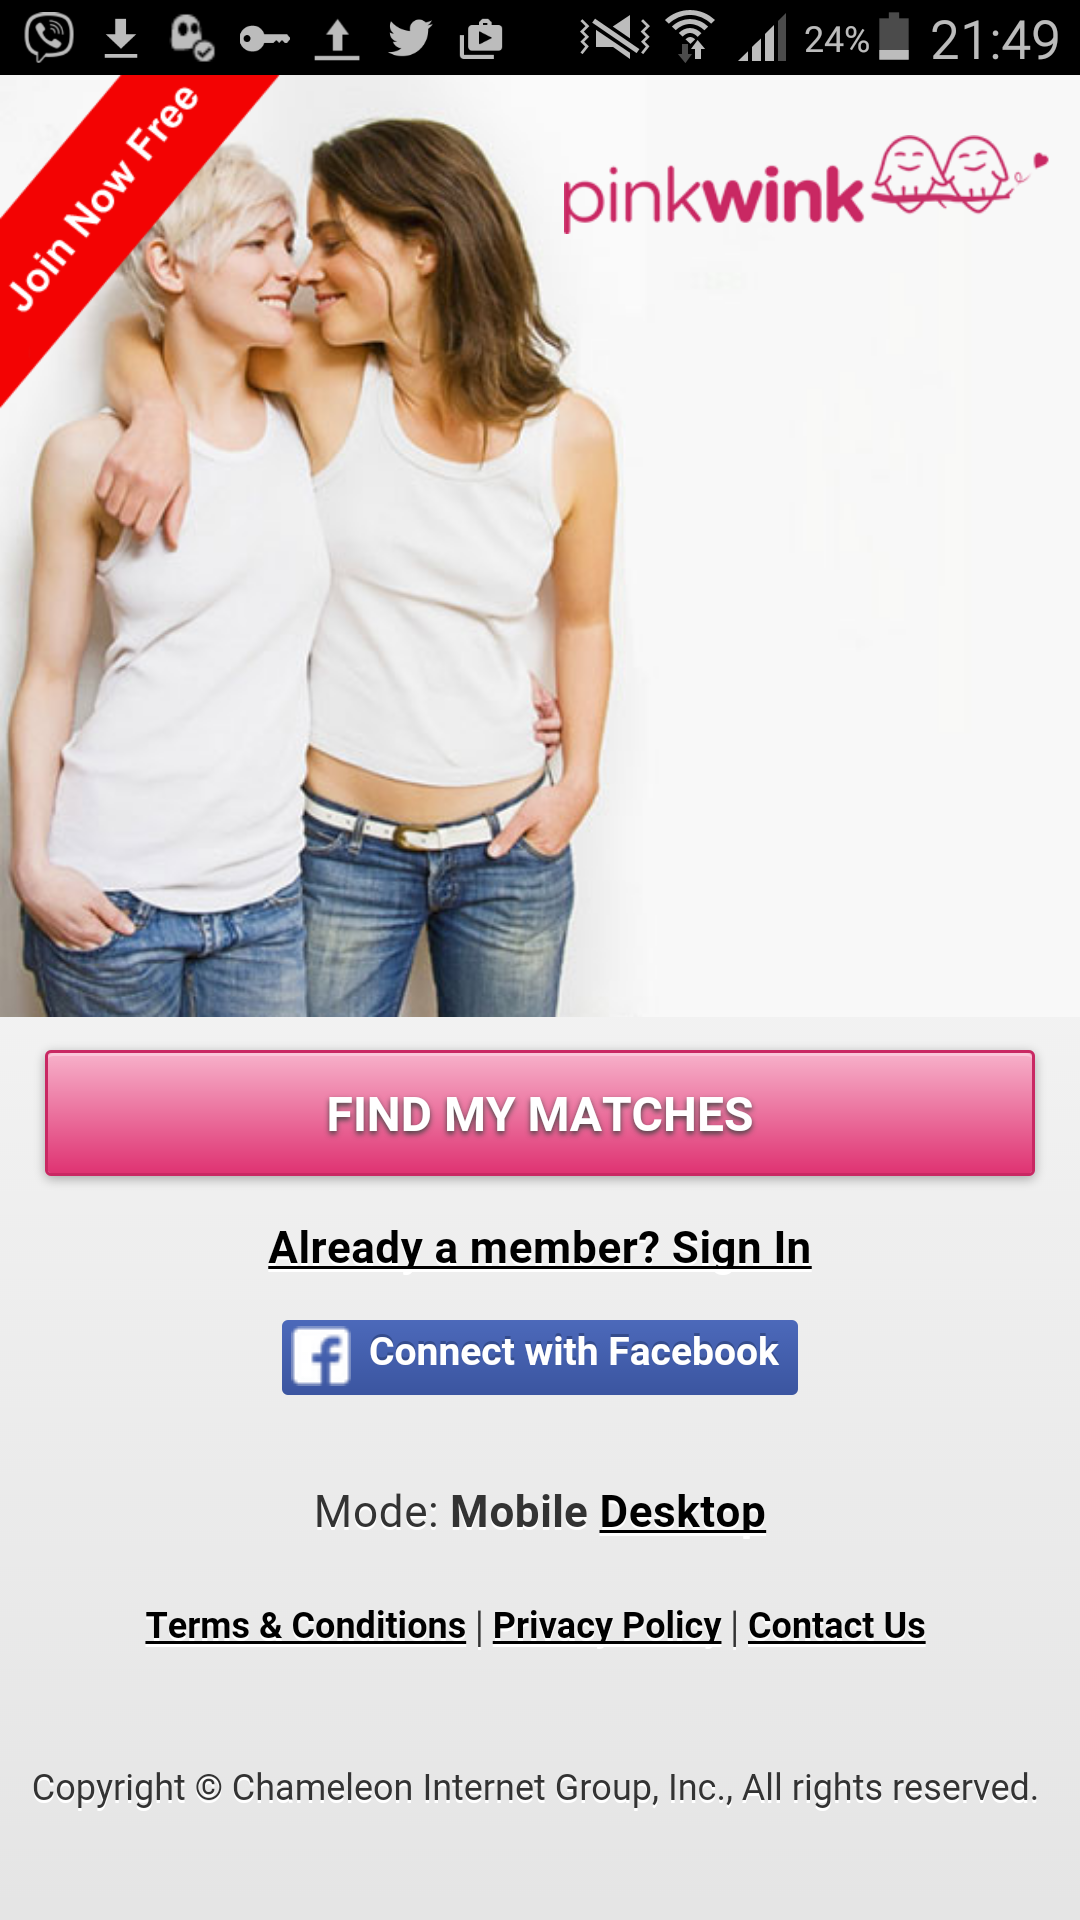 kakinada lesbian dating site The largest bisexual dating site for bisexual singles and friends an online social community for bisexual men, women, couples and bicurious people looking for dating or bisexual encounters.